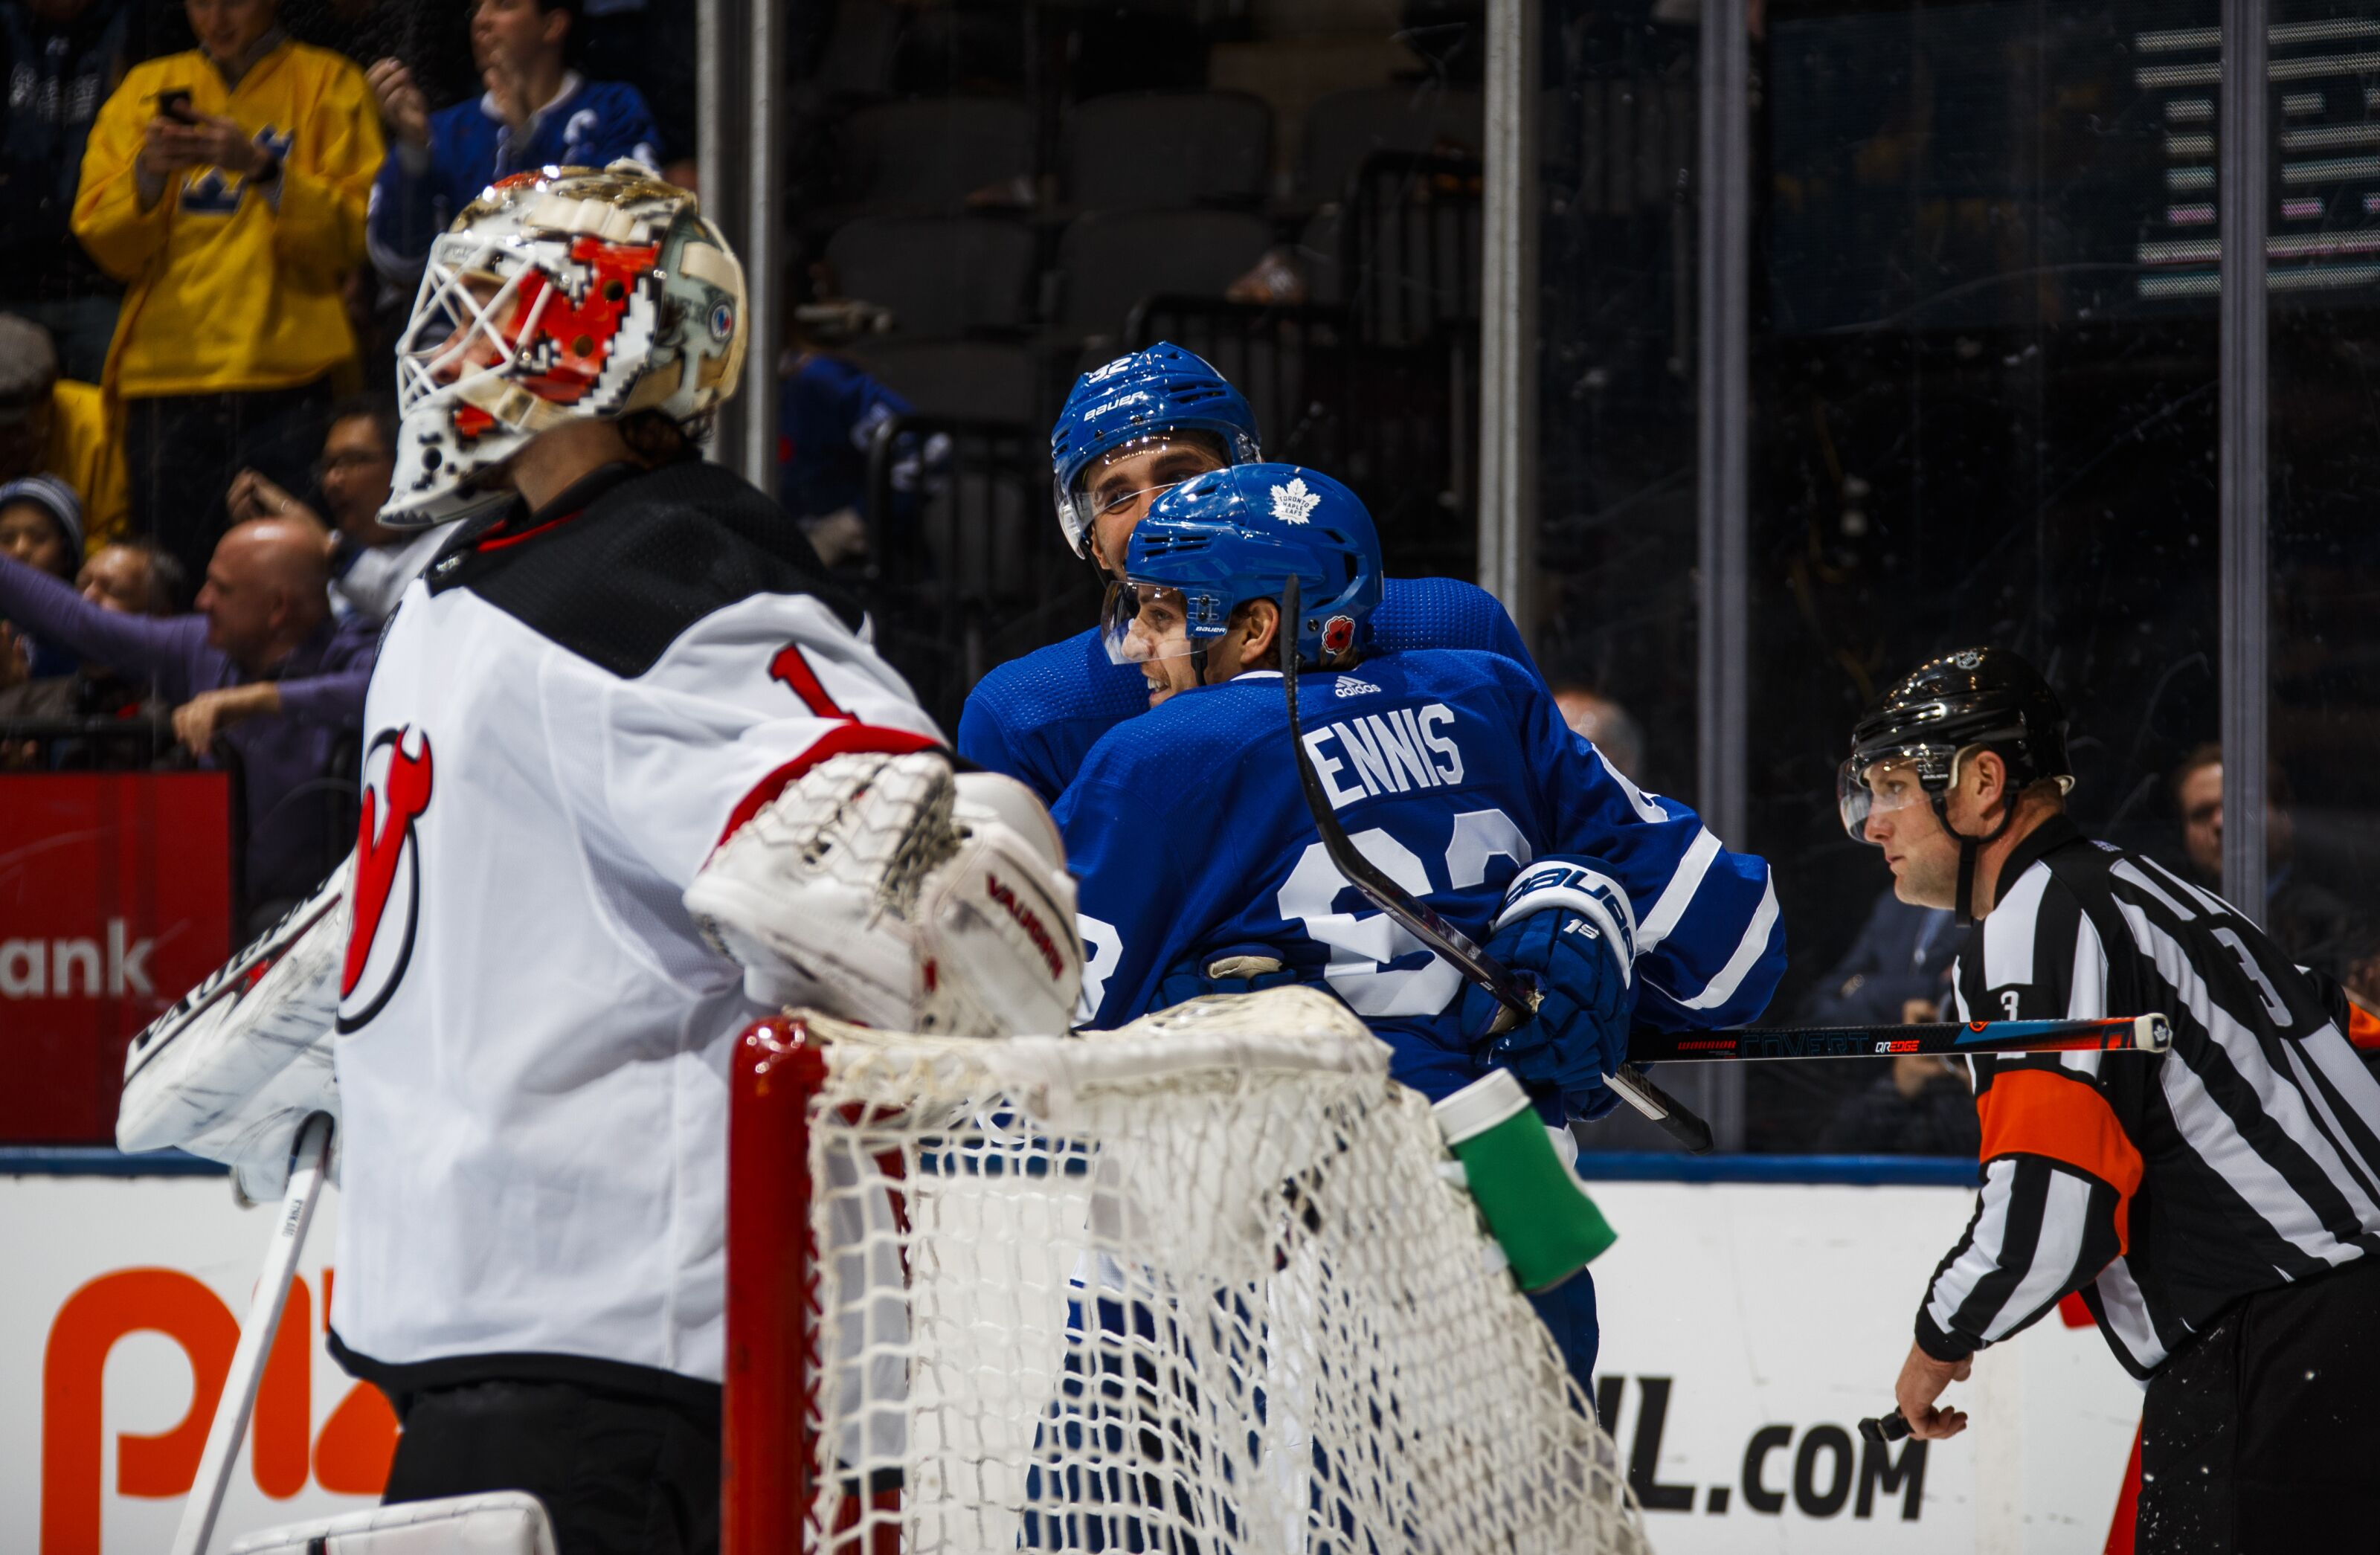 Are New Jersey Devils A Bad Hockey Team?